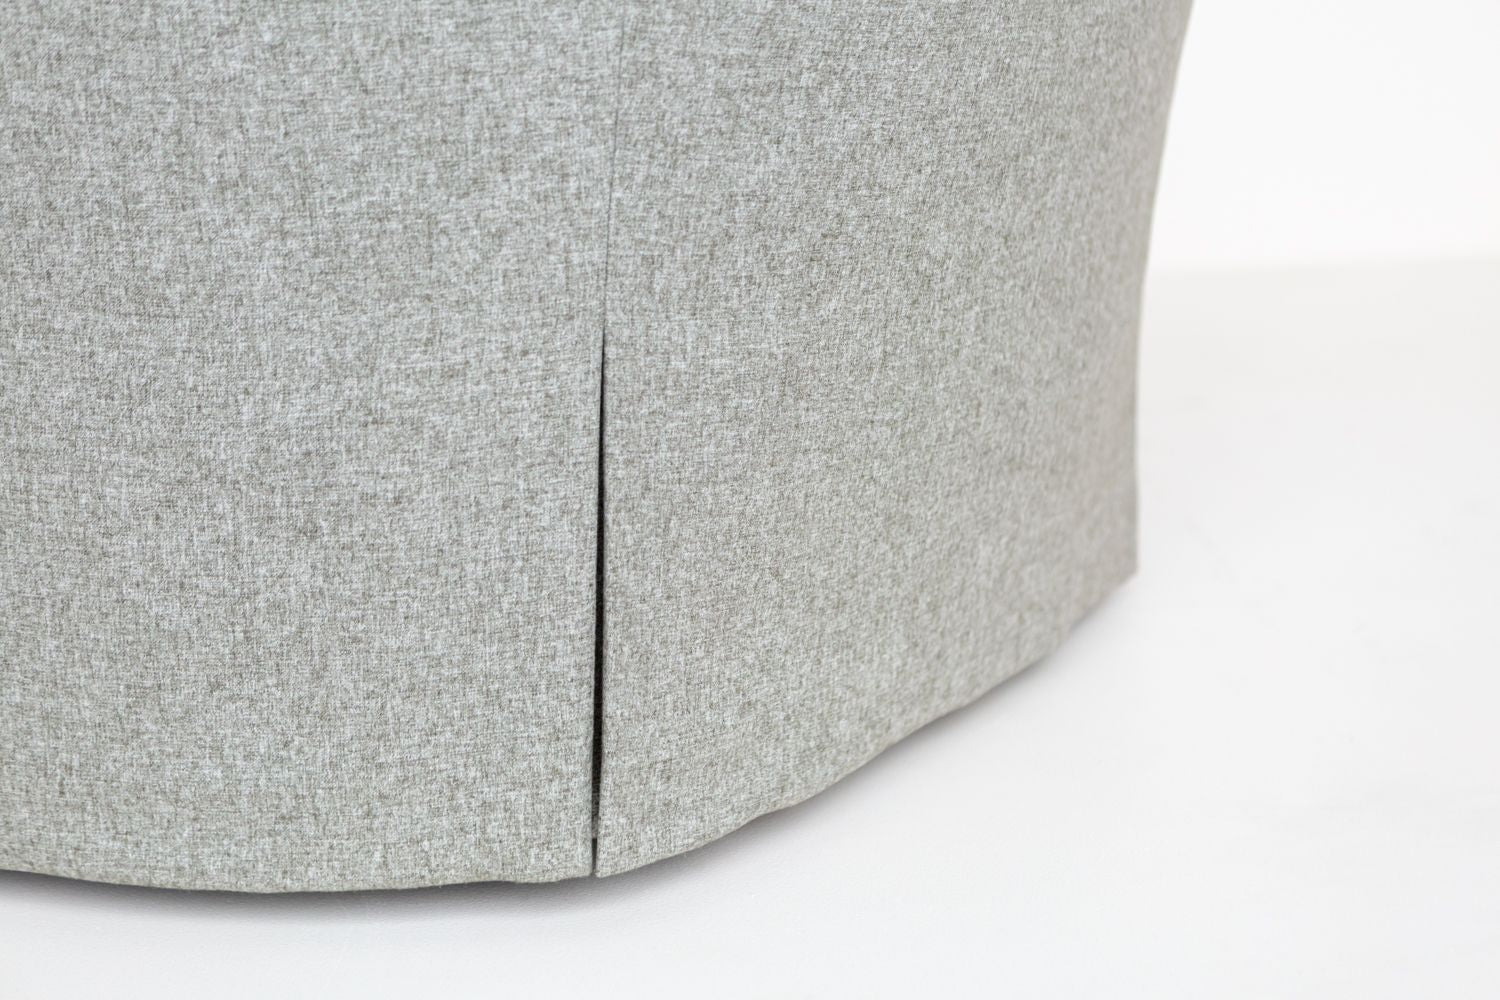 Waterfall skirt detail product shot of the ffabb home Coco Swivel chair